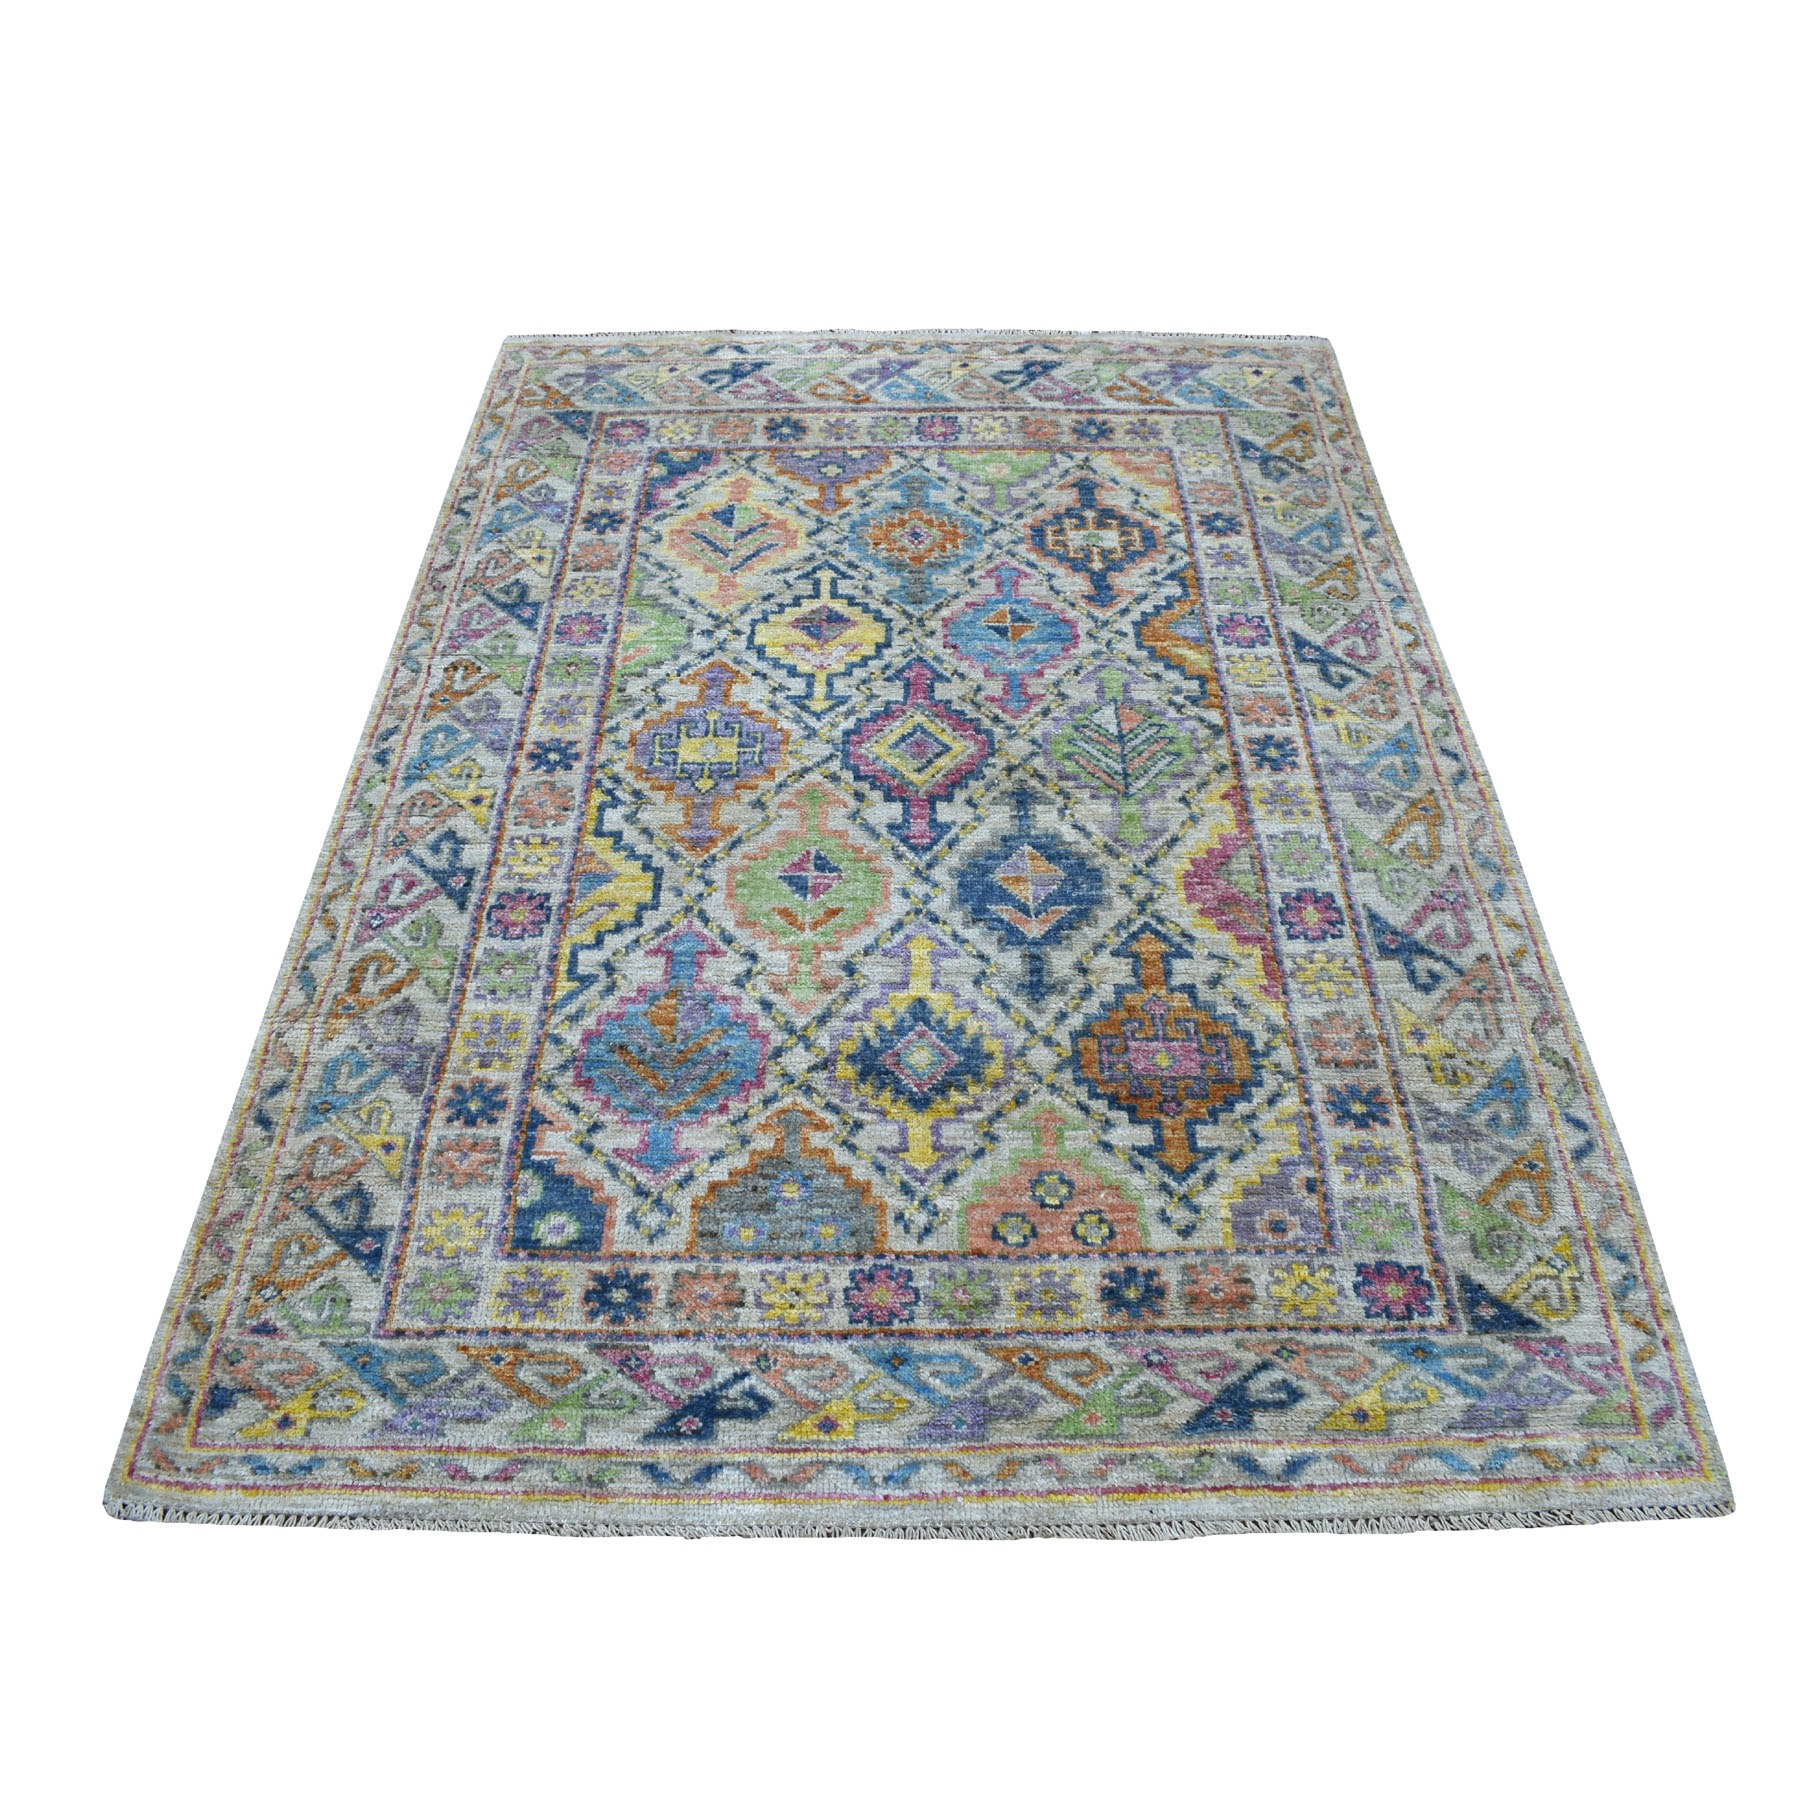 "6'10""x4'10"" Ivory Tribal Design Colorful Afghan Baluch Hand Knotted Pure Wool Oriental Rug"